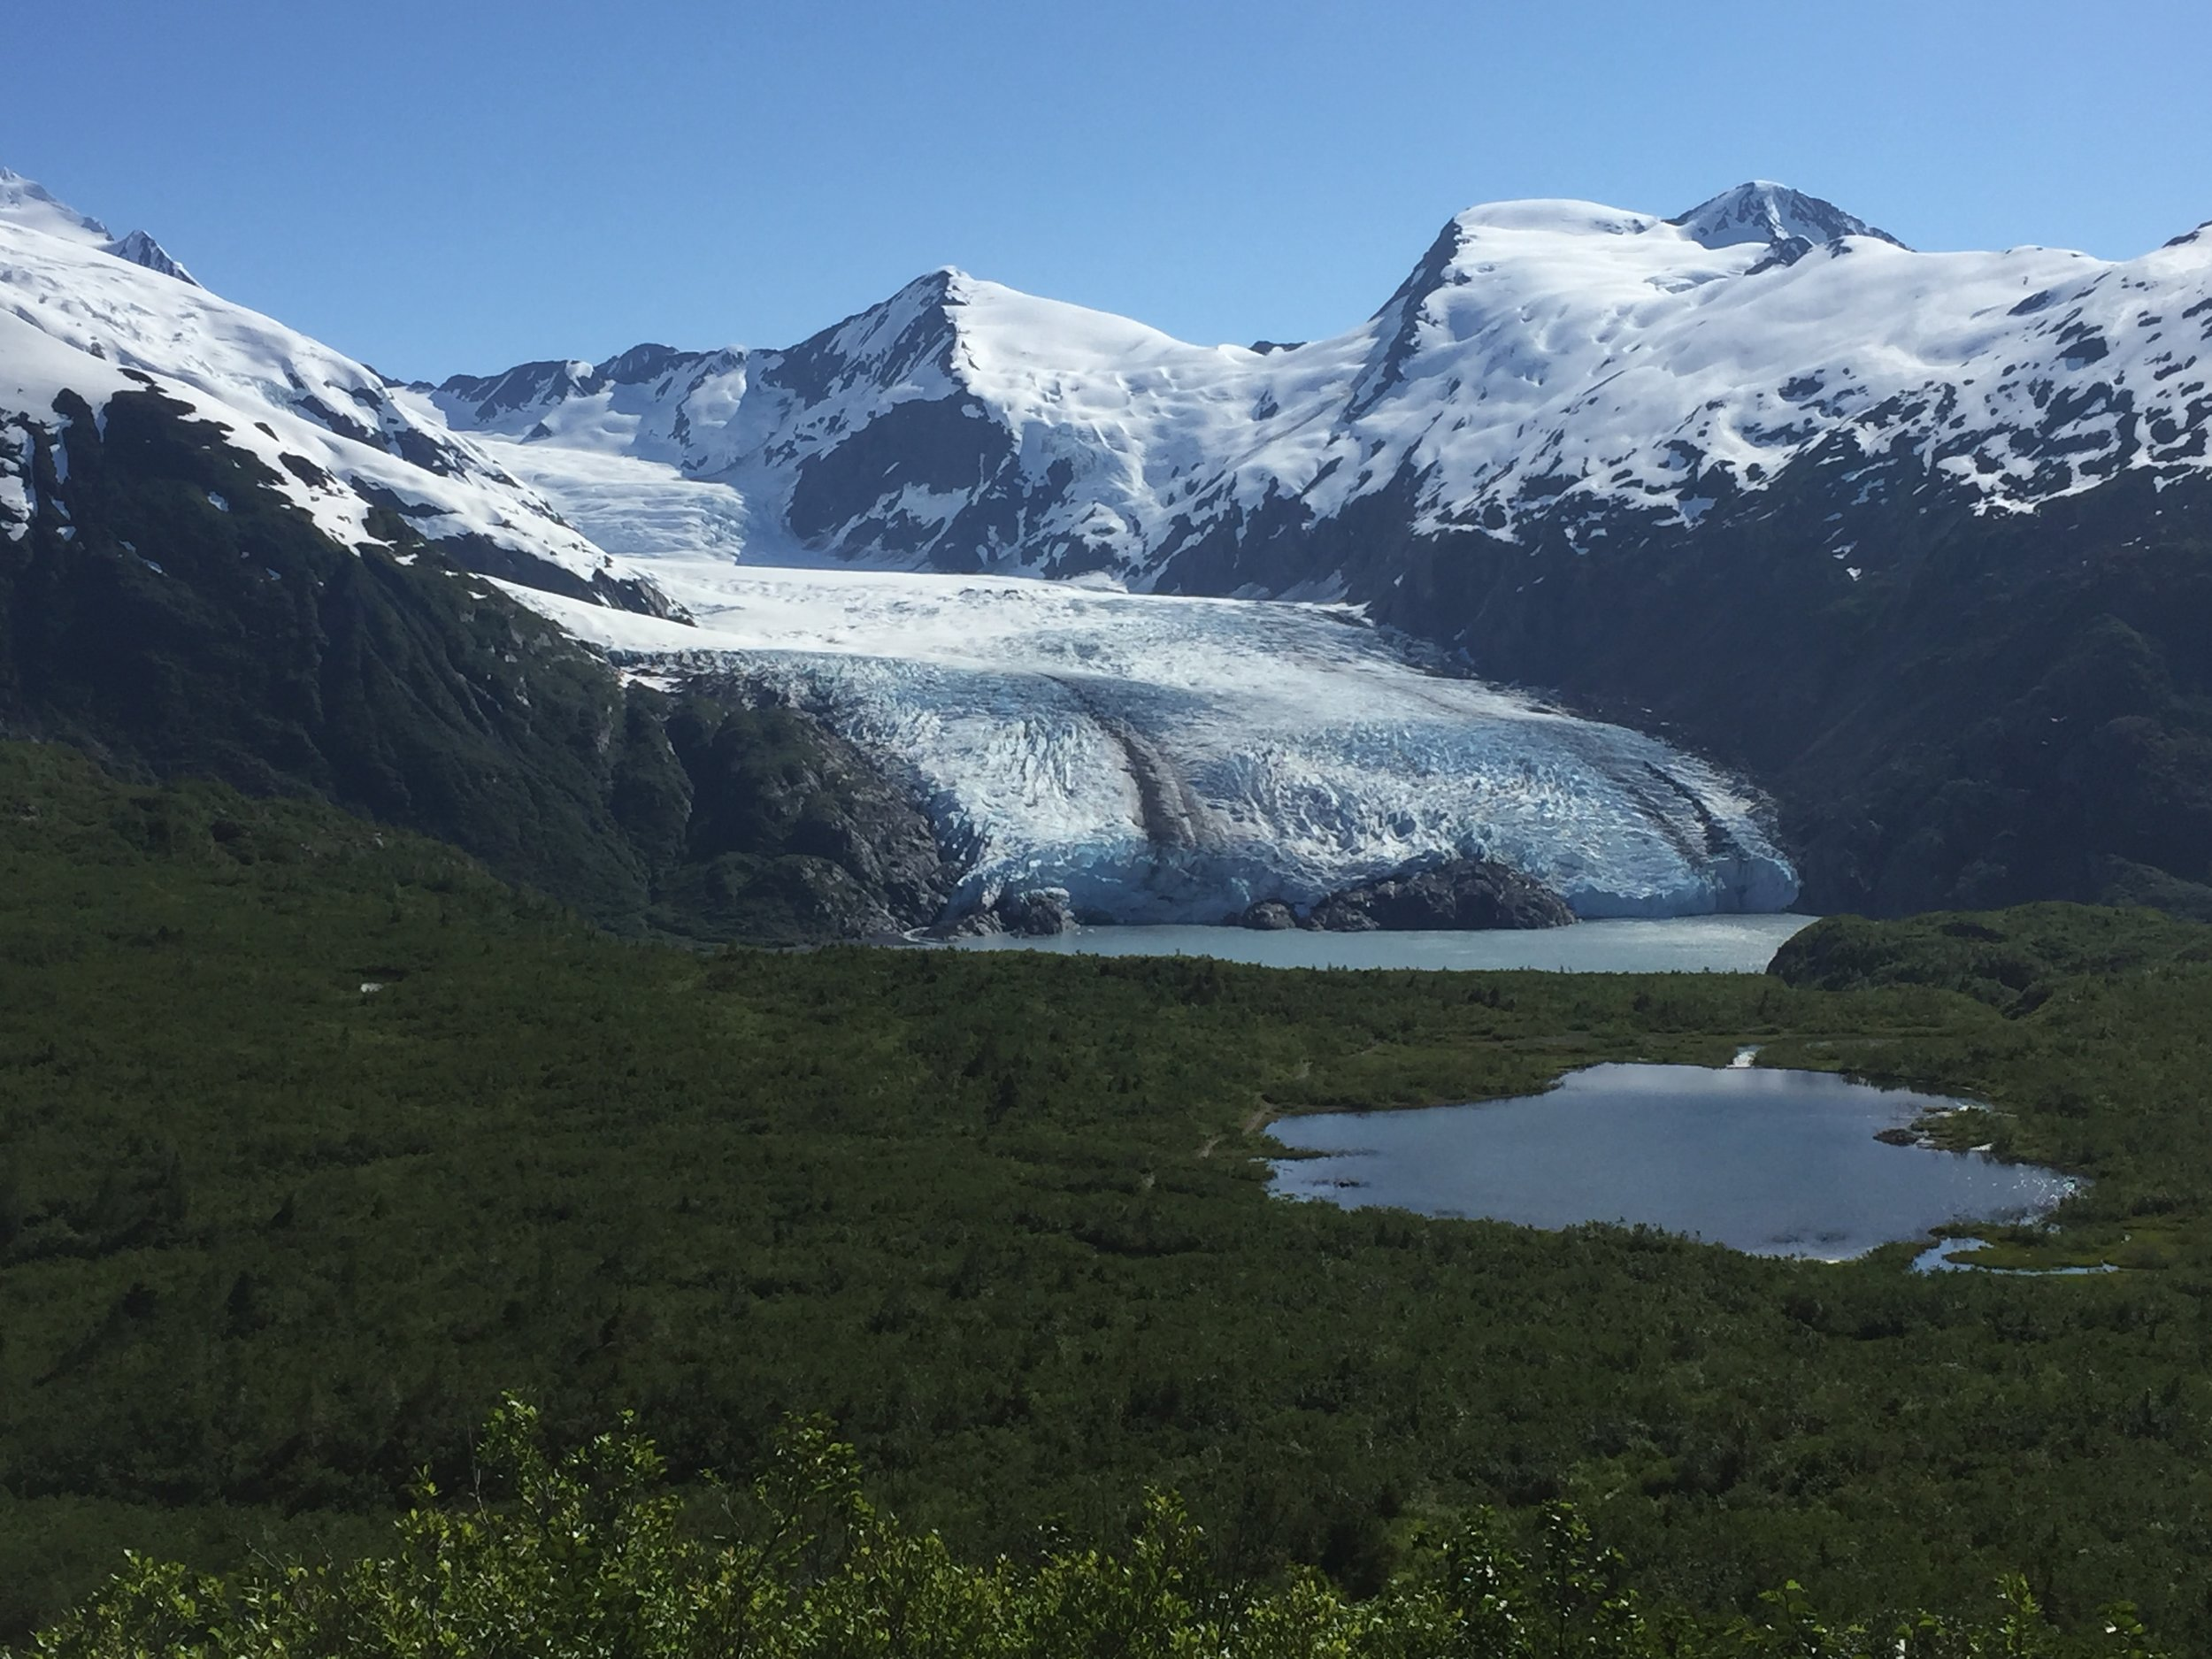 This is the view looking the other way towards Portage Glacier and Portage Lake from the Portage Pass Trail.